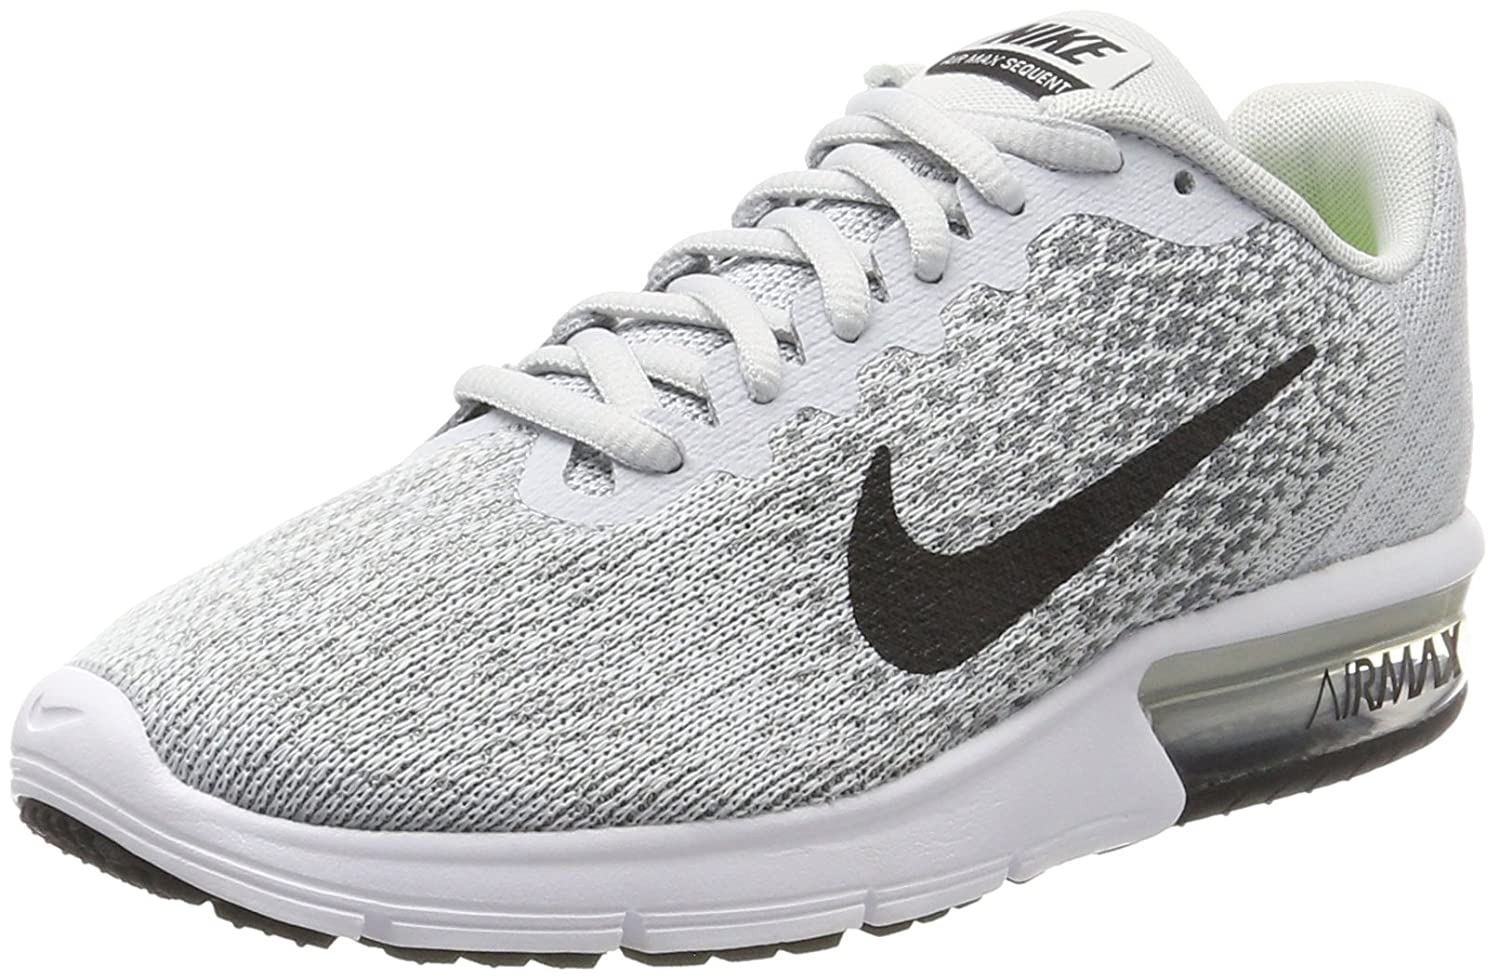 NIKE Men's Air Max Sequent 2 Running Shoe B01H2LNVUK 7.5 D(M) US|Pure Platinum/Black/Cool Grey